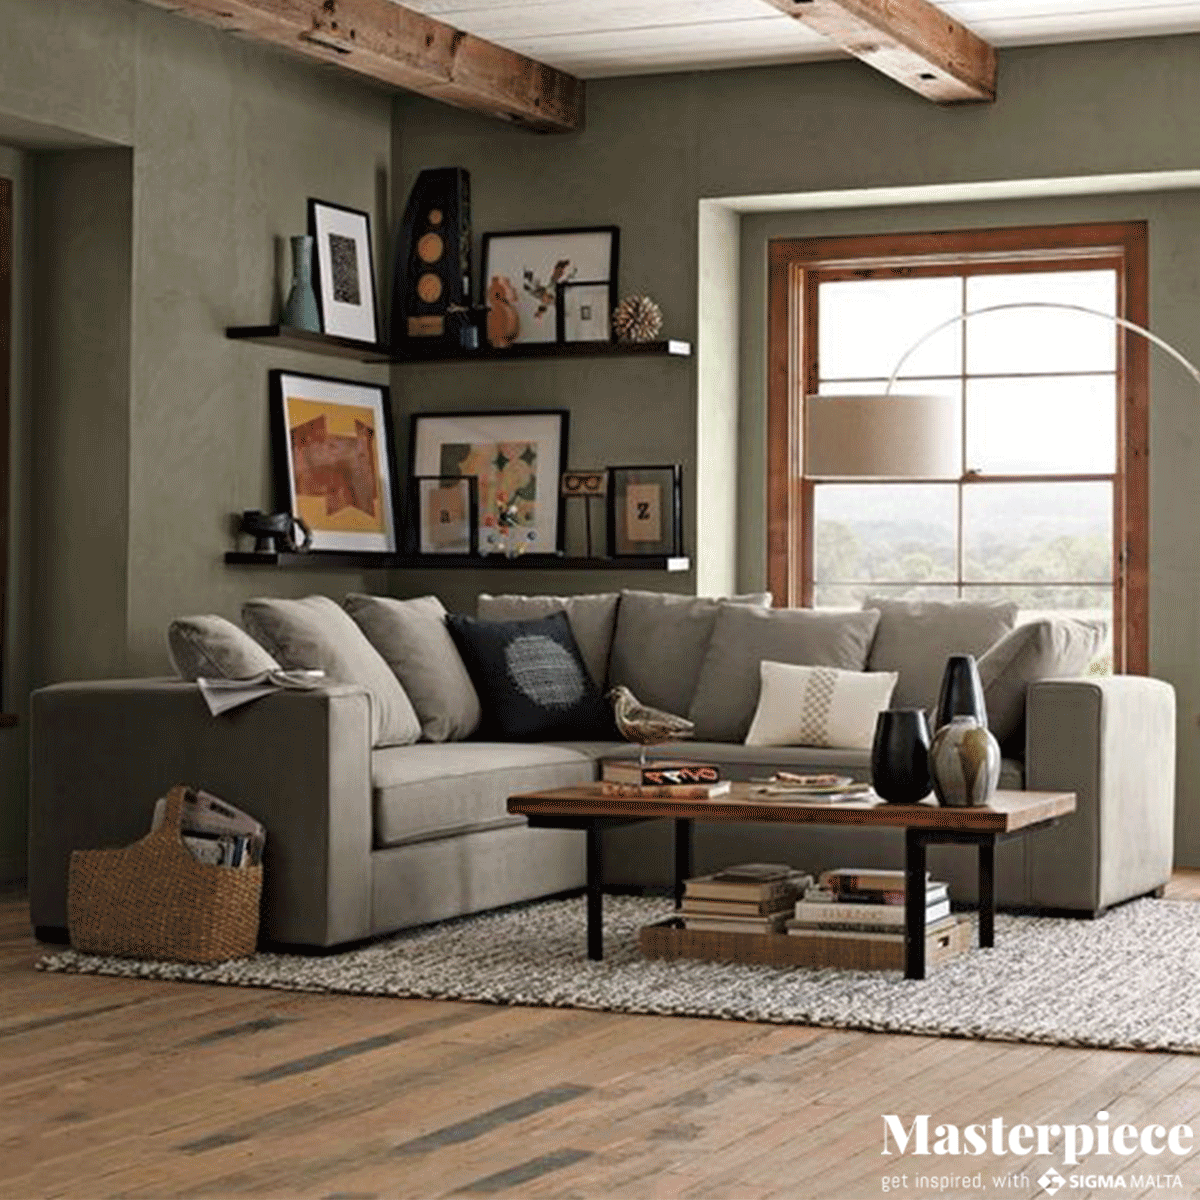 The exposed beams and green </br><span>palette make for a rugged statement.</span>